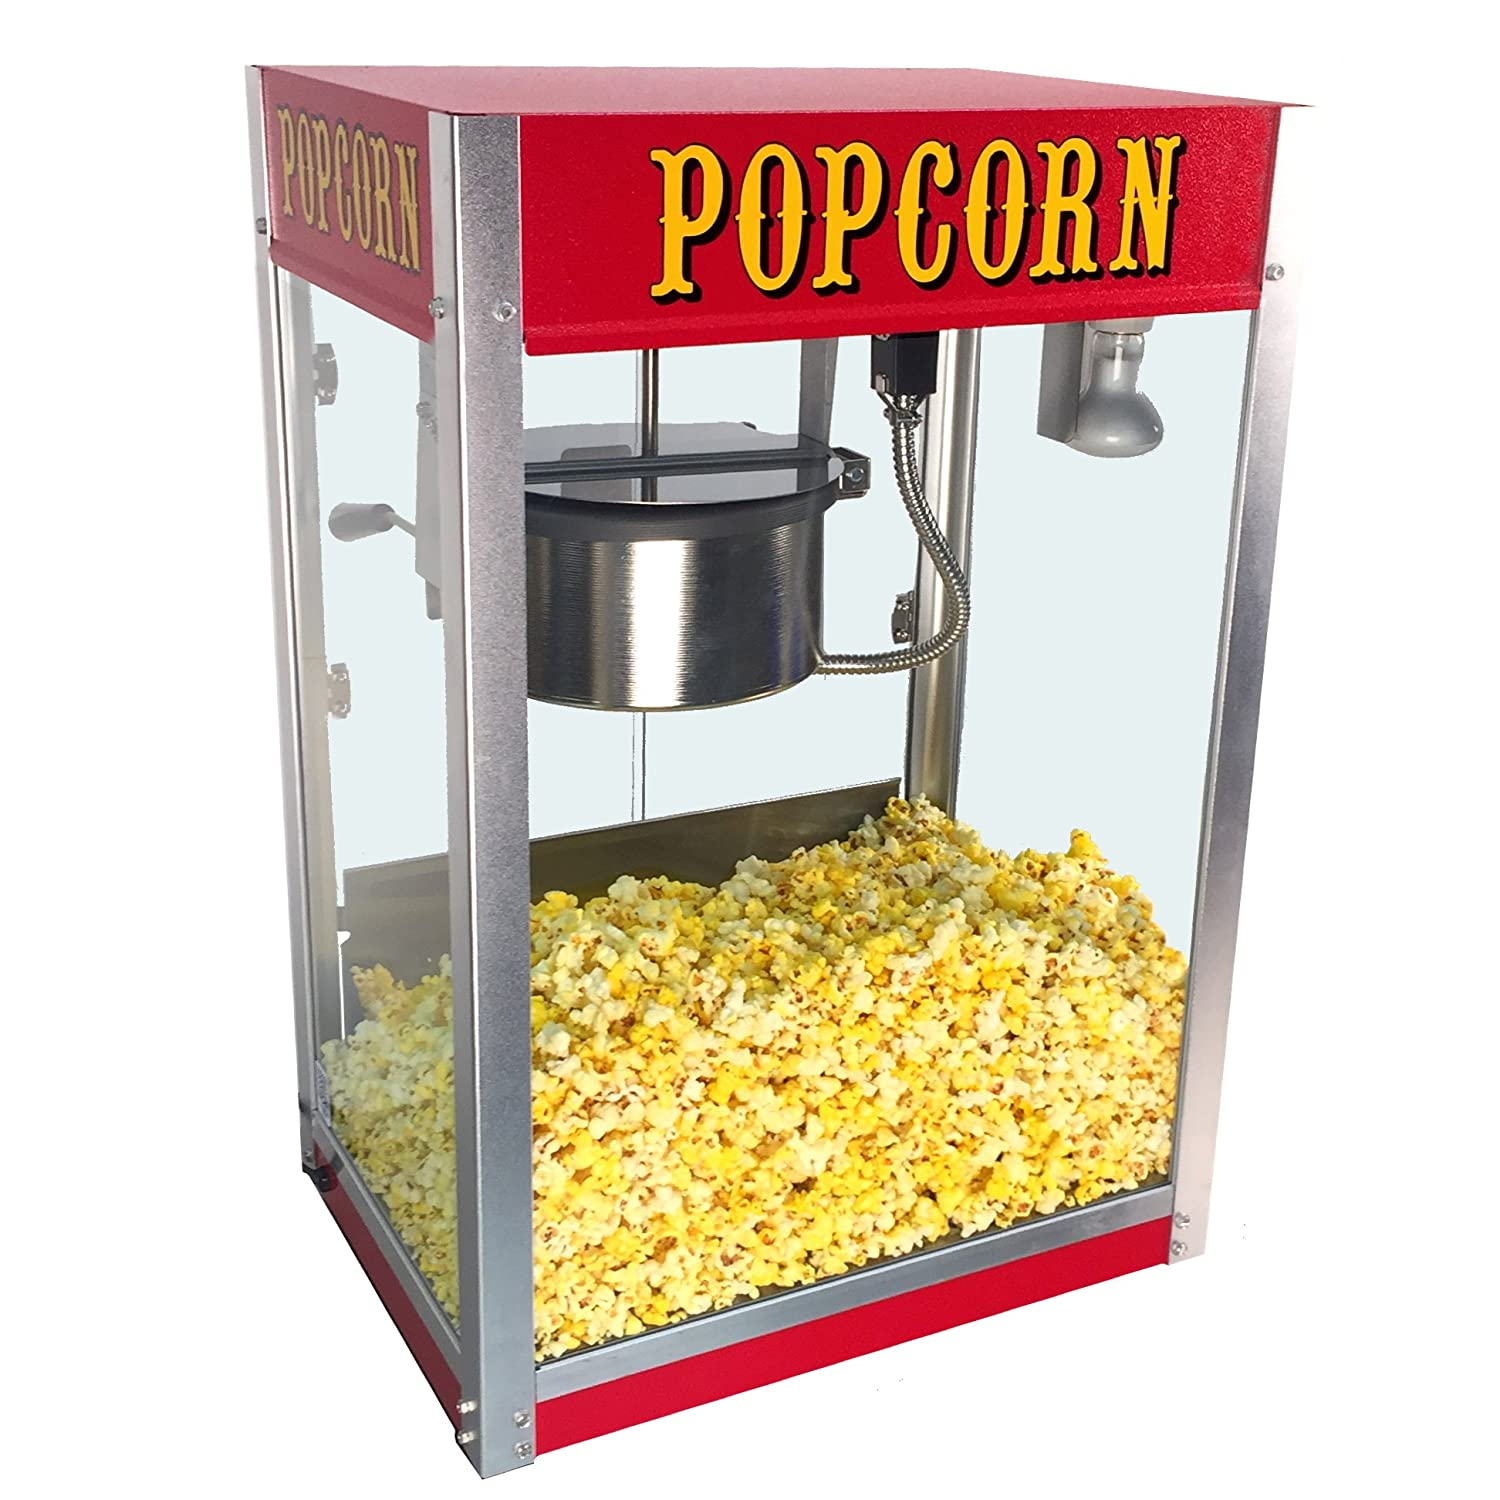 Paragon Theater Series Popcorn Popper - Medium